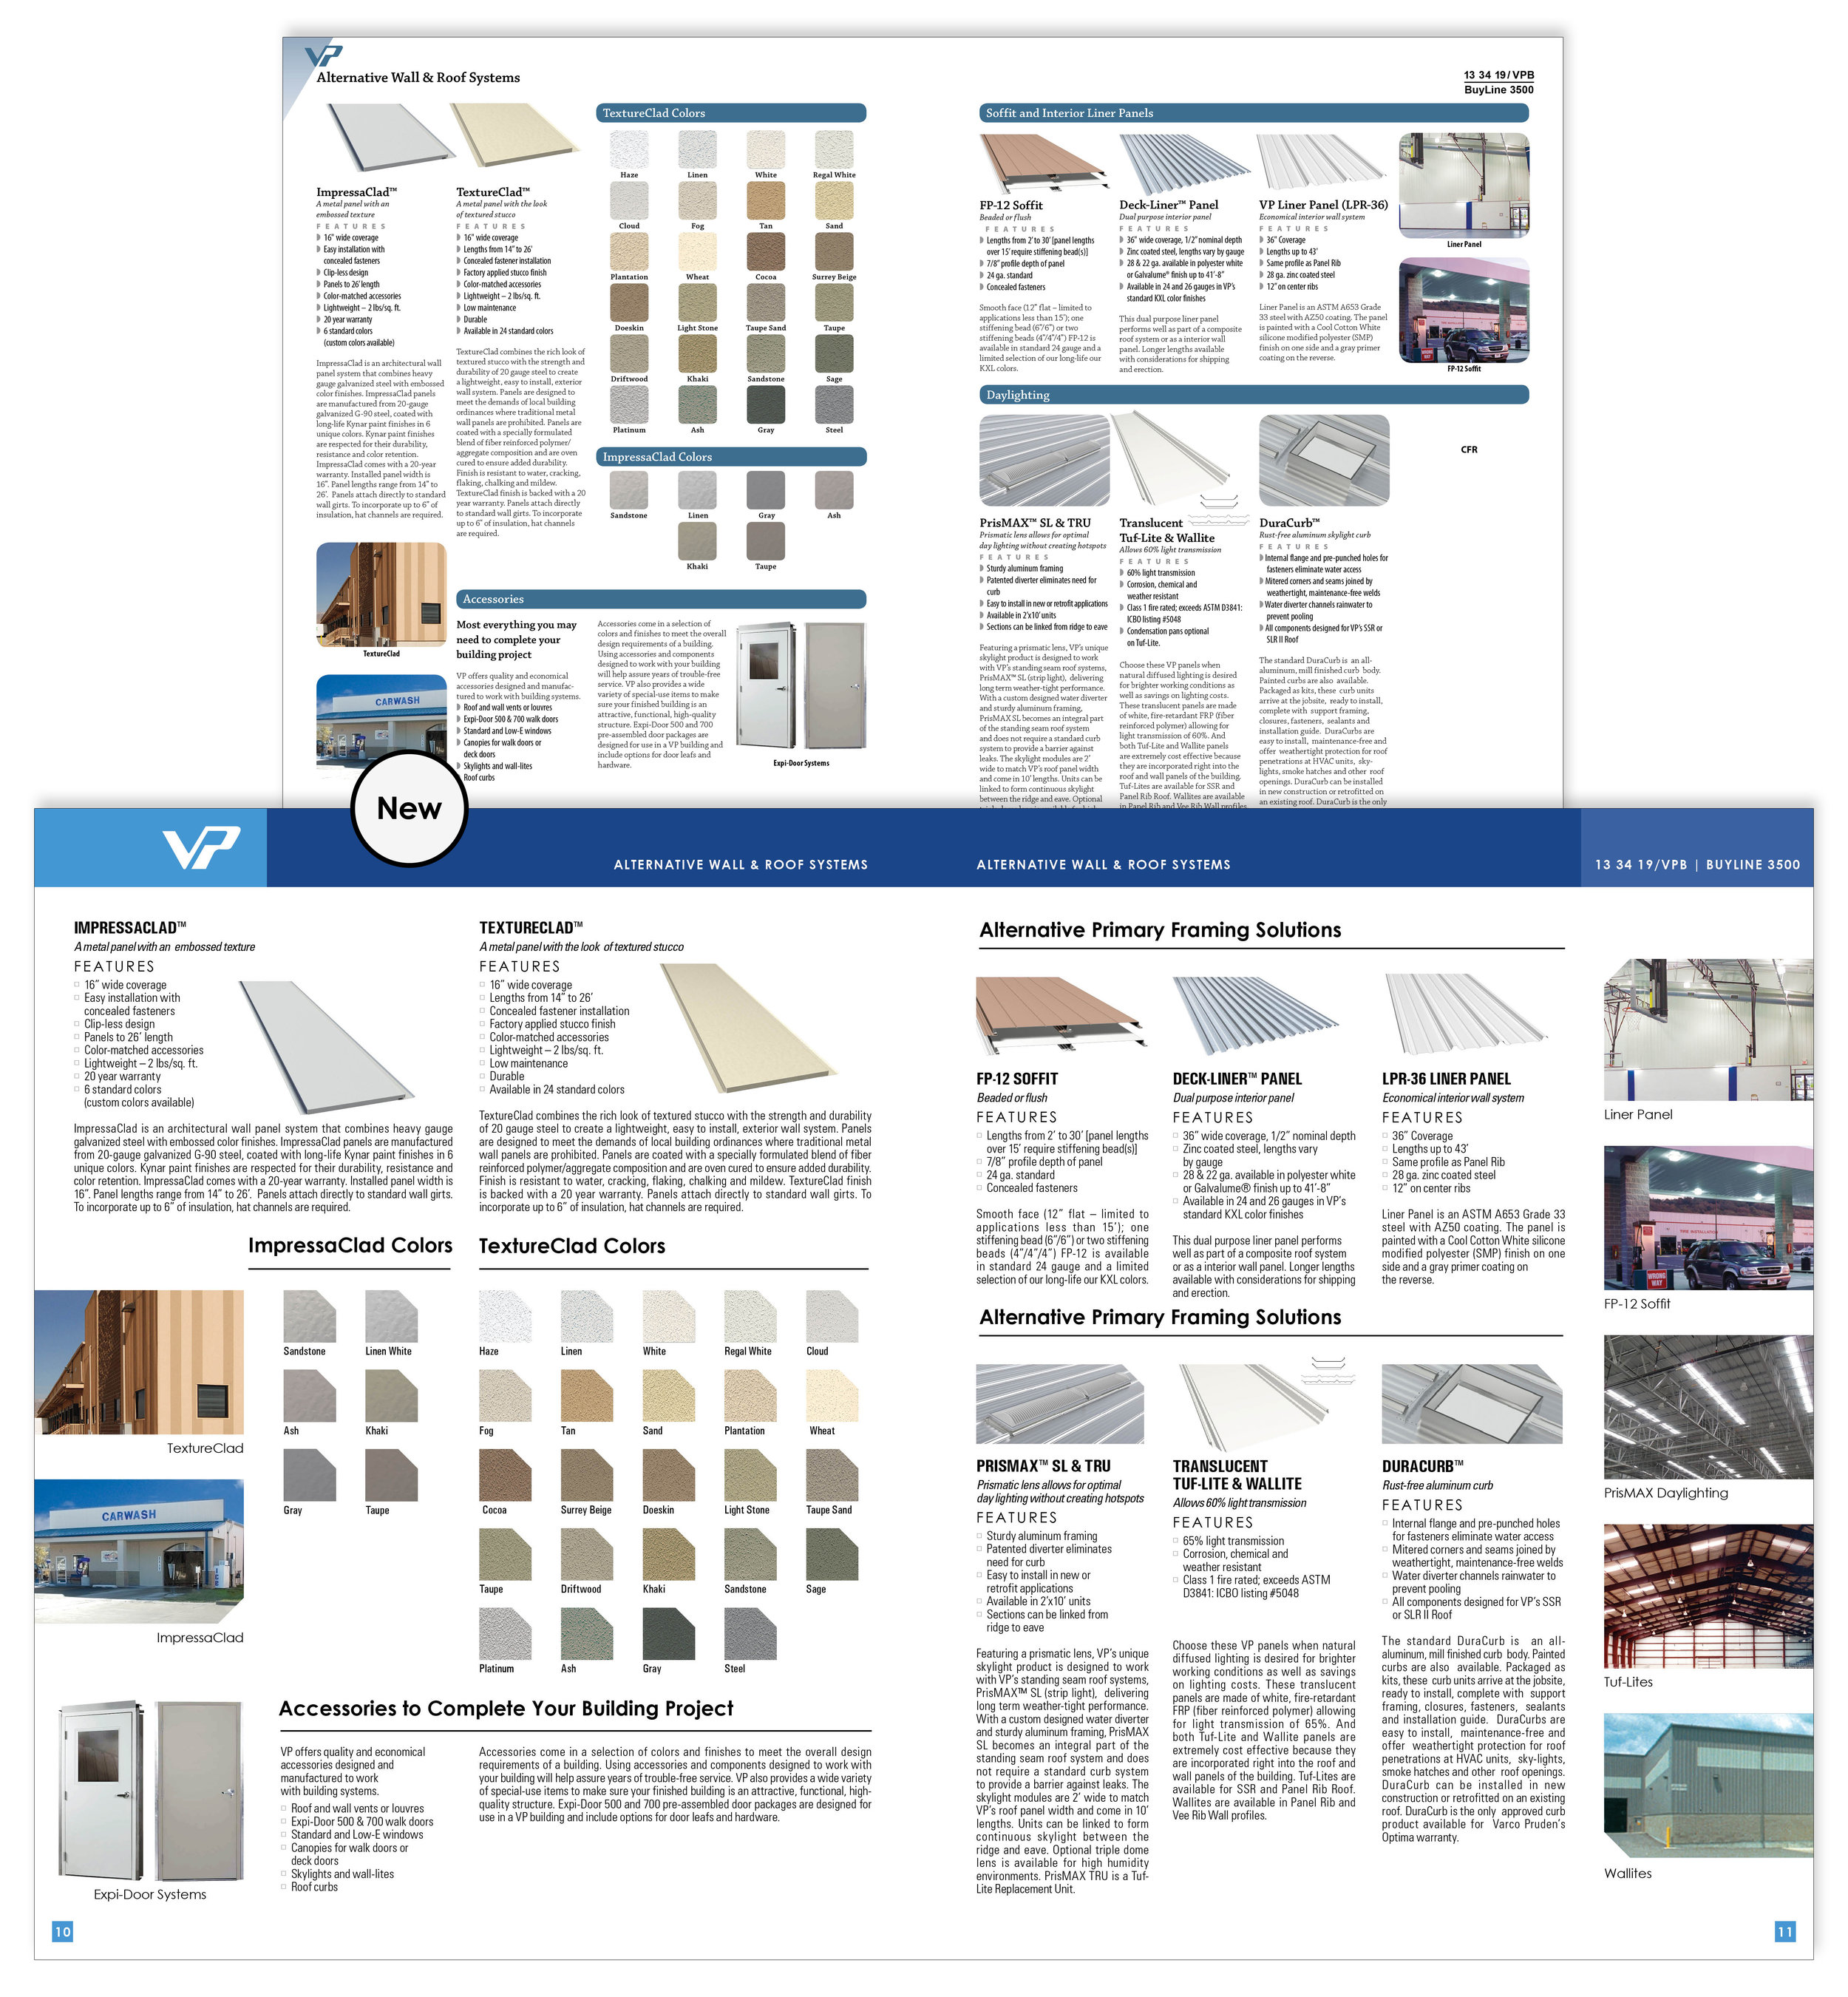 Varco-Pruden_Product-Guide_Print-Design_Before-After_Dreamcapture_Memphis-TN_3